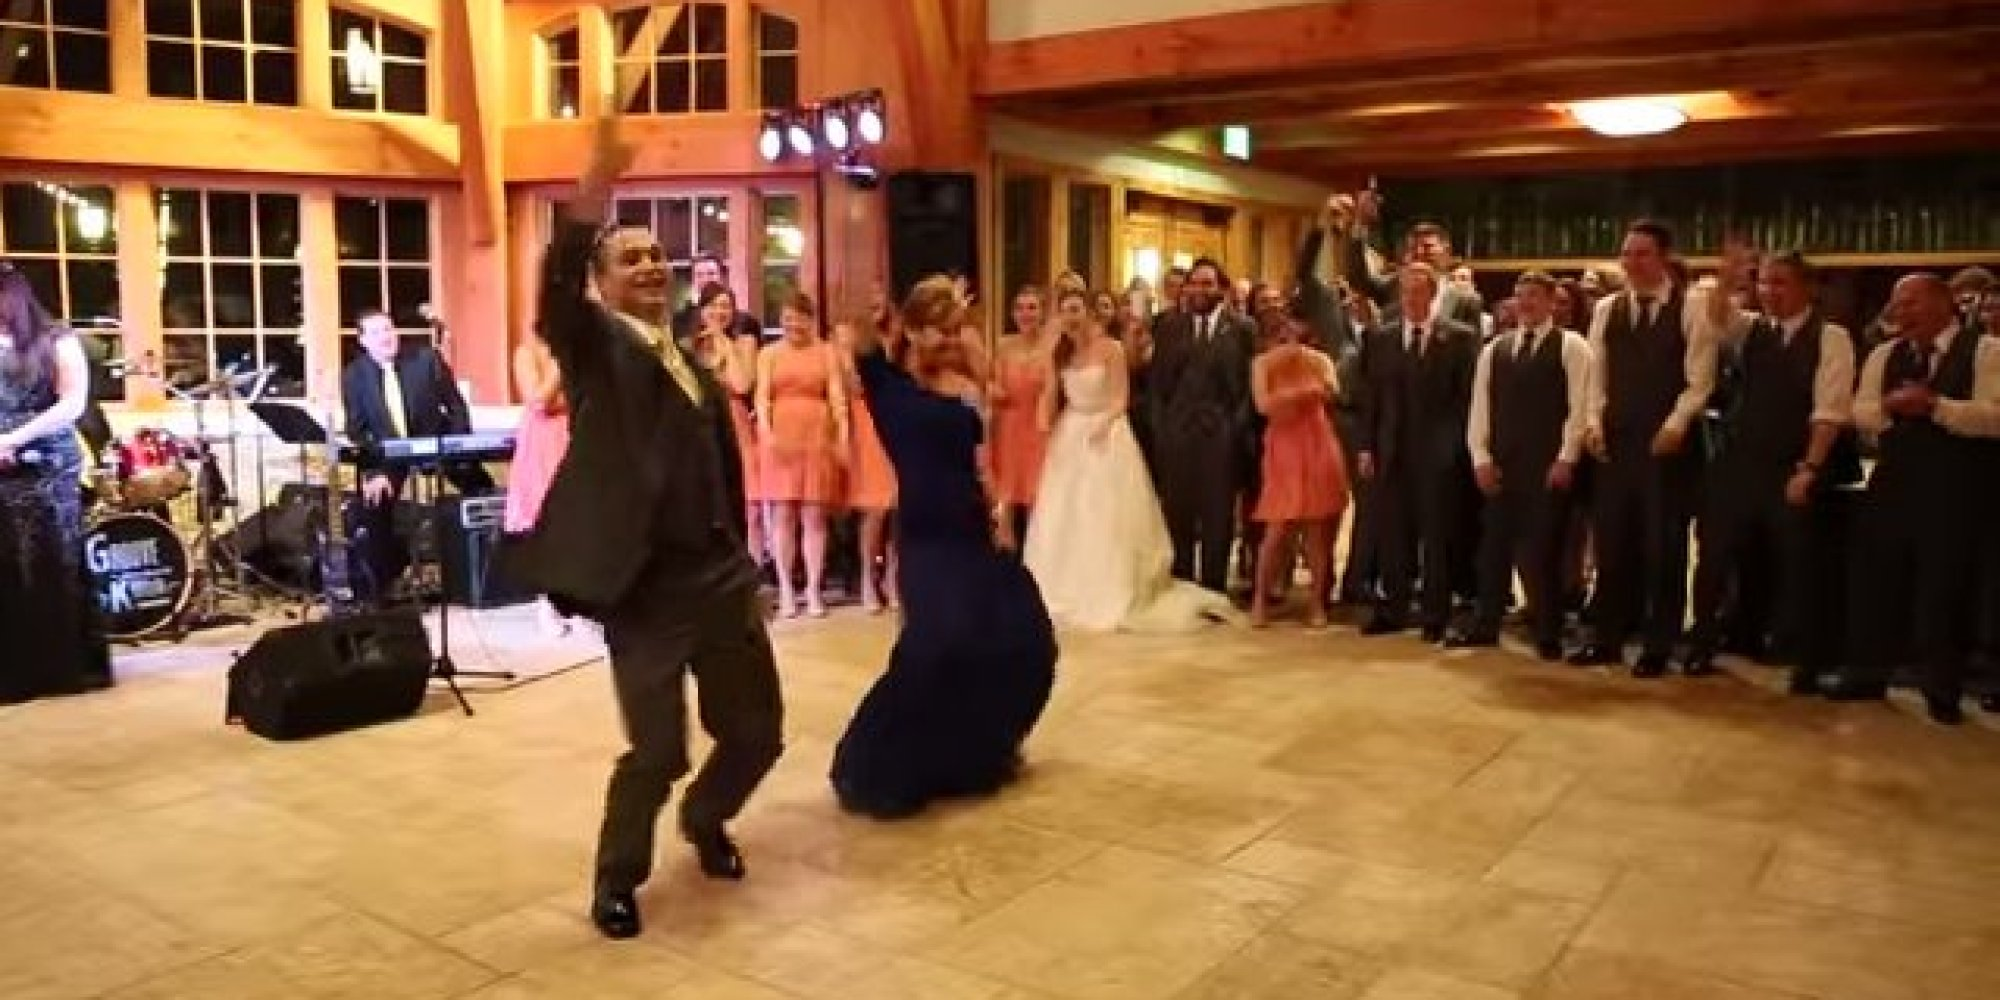 This Mother And Son Wedding Dance Really Is Something